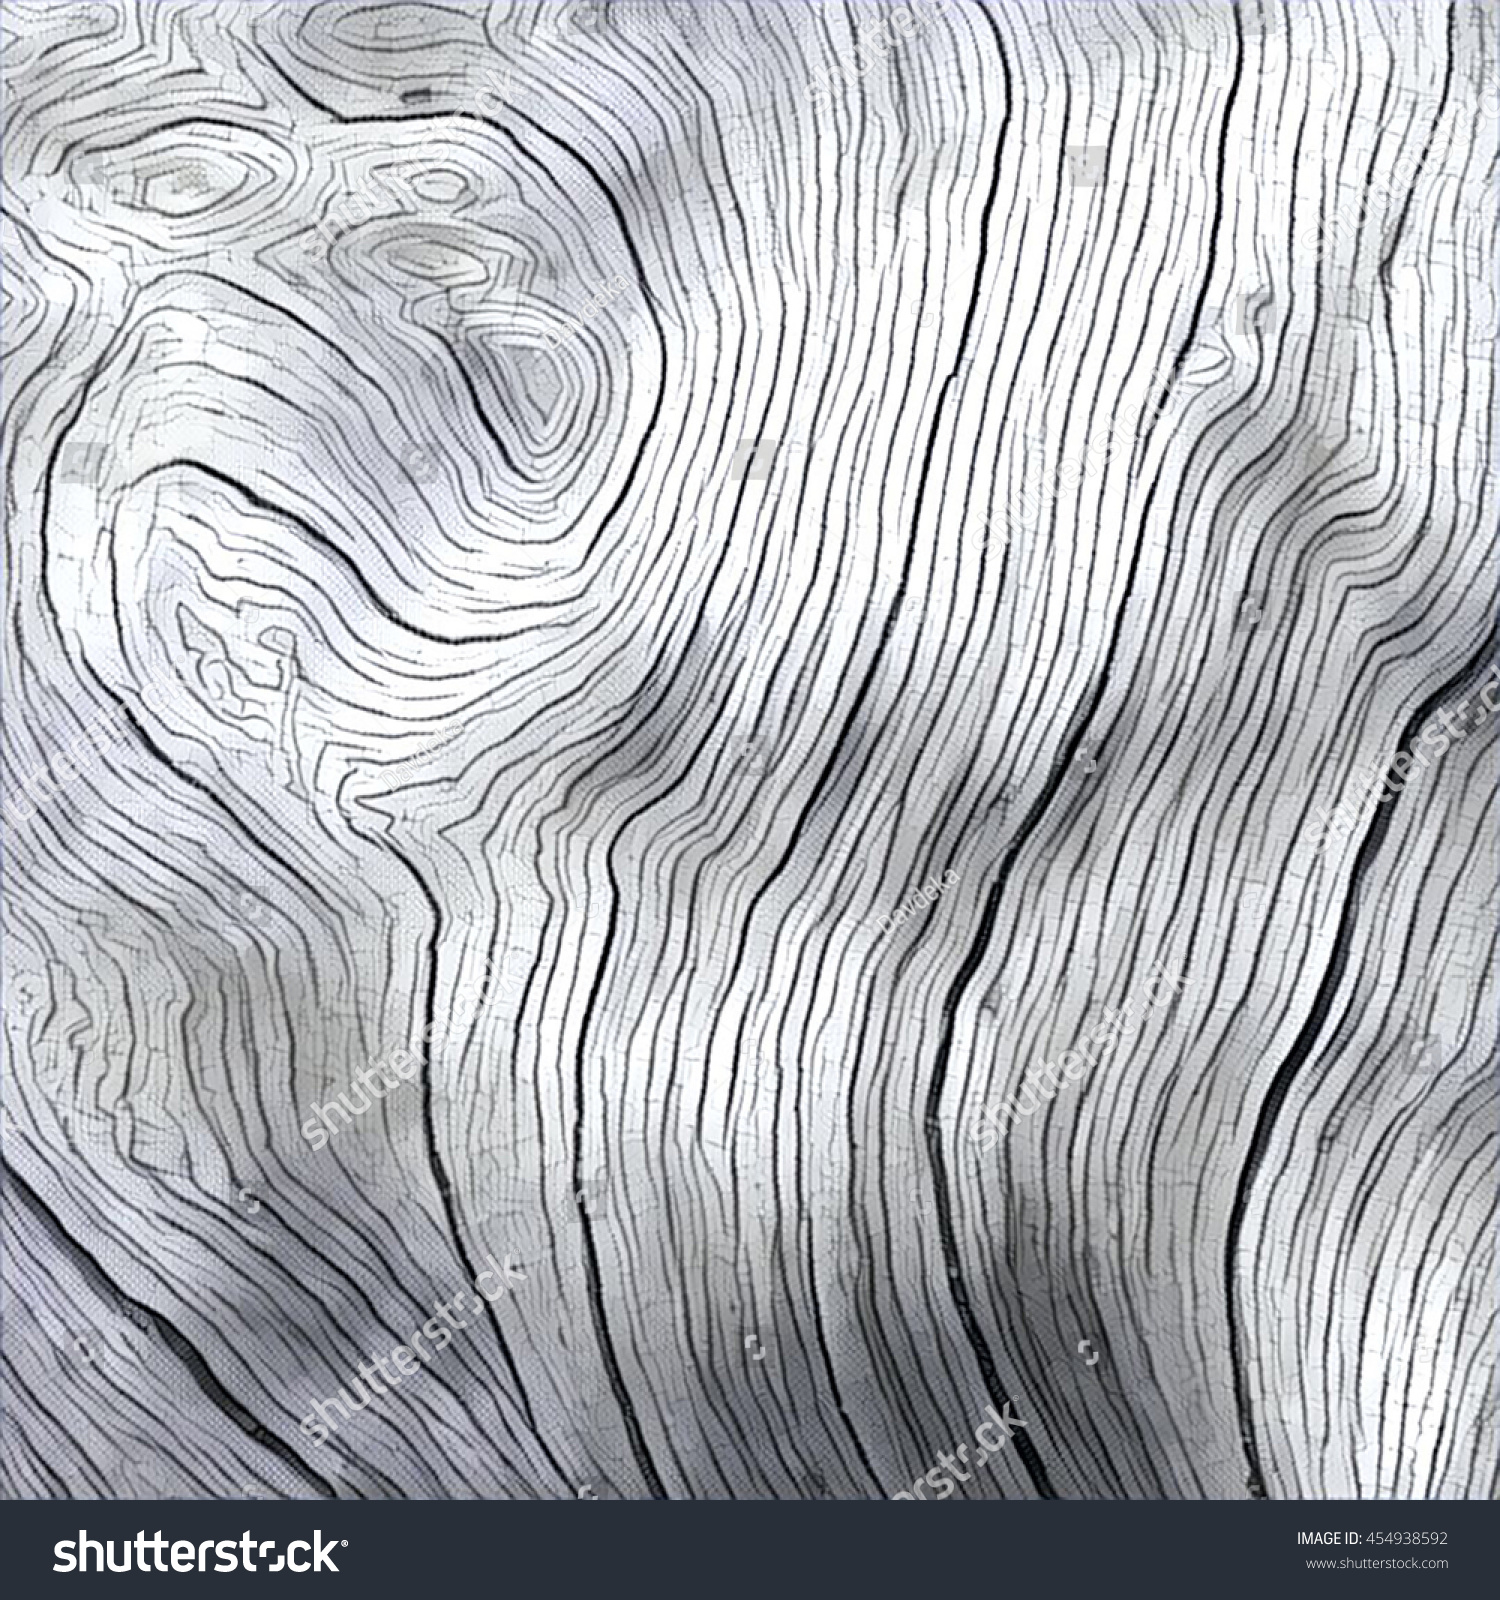 Wooden Texture Close Up Photo White And Black Wood Background Monochrome Rustic